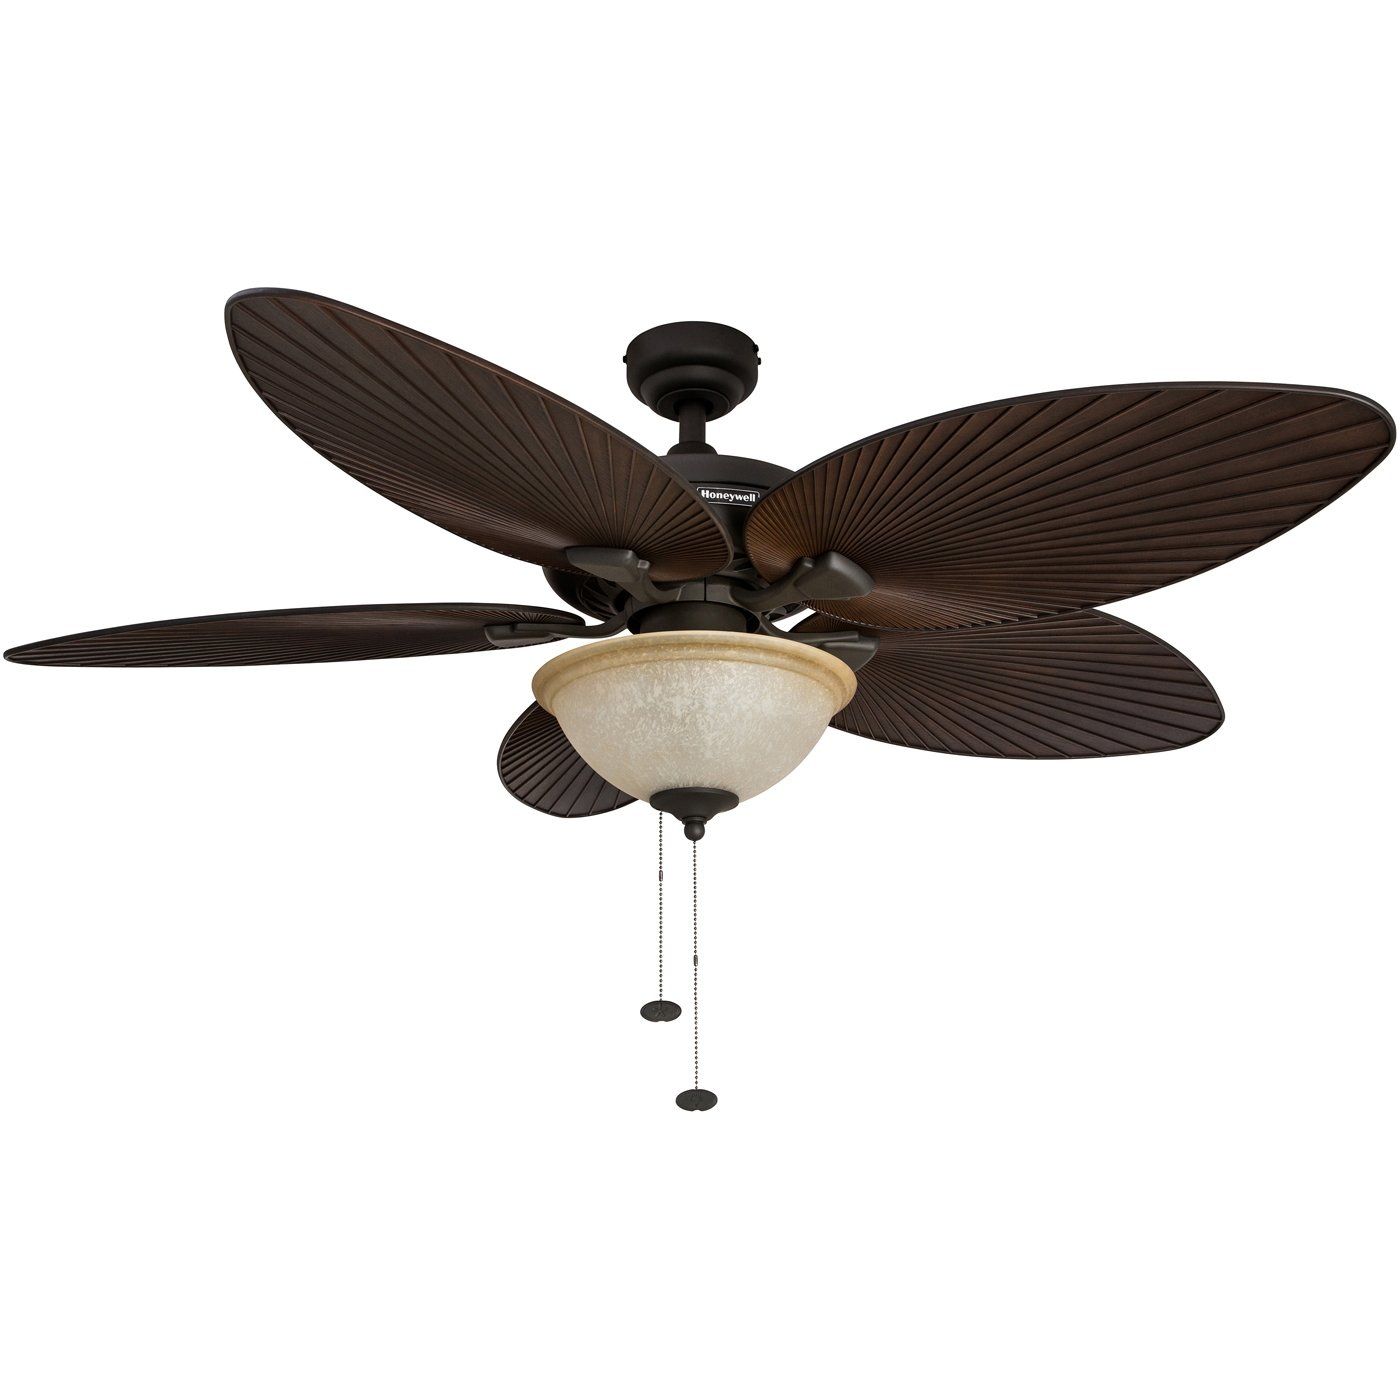 Honeywell Palm Island 52-Inch Tropical Ceiling Fan with Sunset Glass Bowl Light, Five Palm Leaf Blades, Indoor/Outdoor, Bronze by Honeywell Ceiling Fans